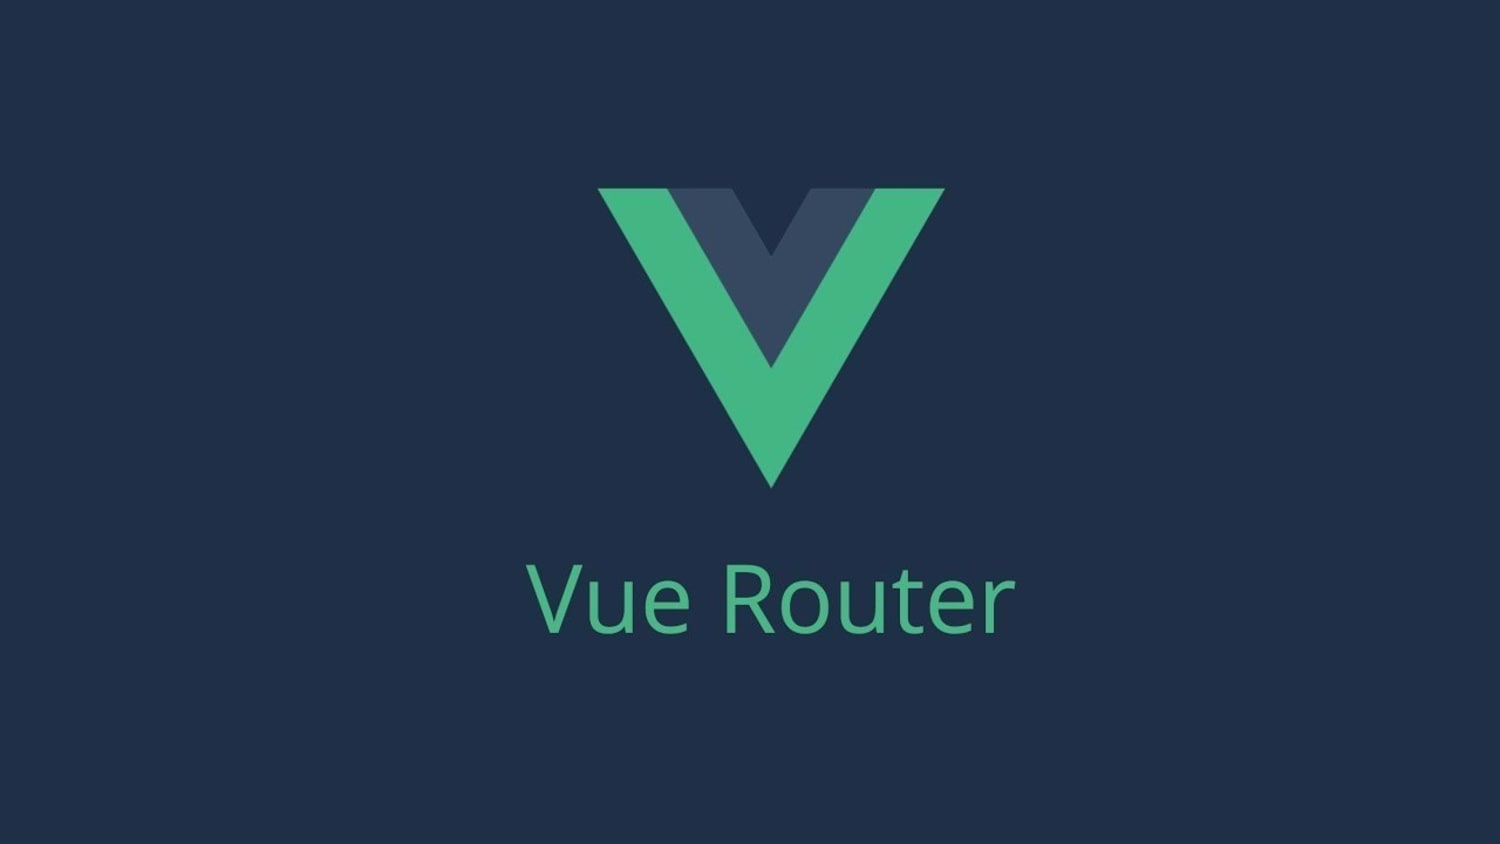 Definition of Vue router